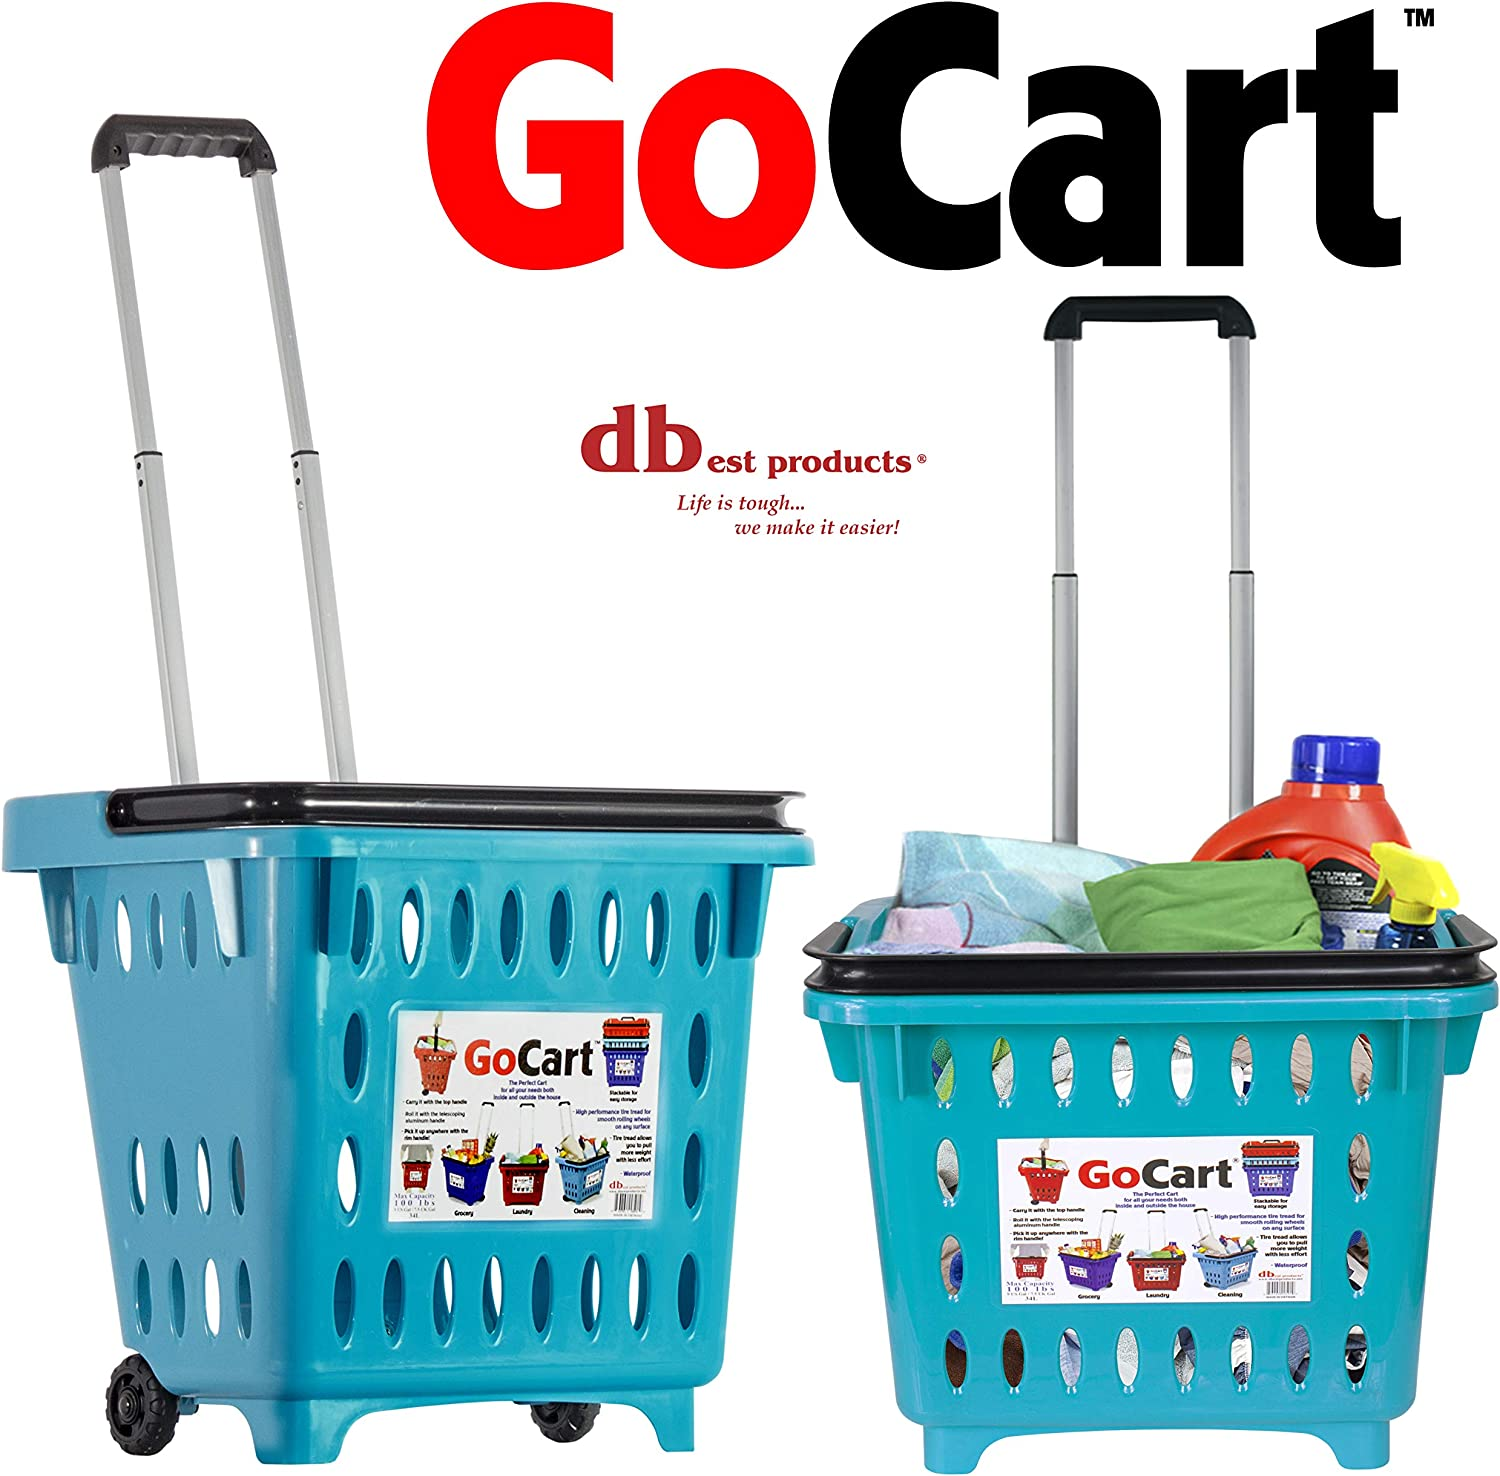 dbest products GoCart,Teal Grocery Cart Shopping Laundry Basket on Wheels